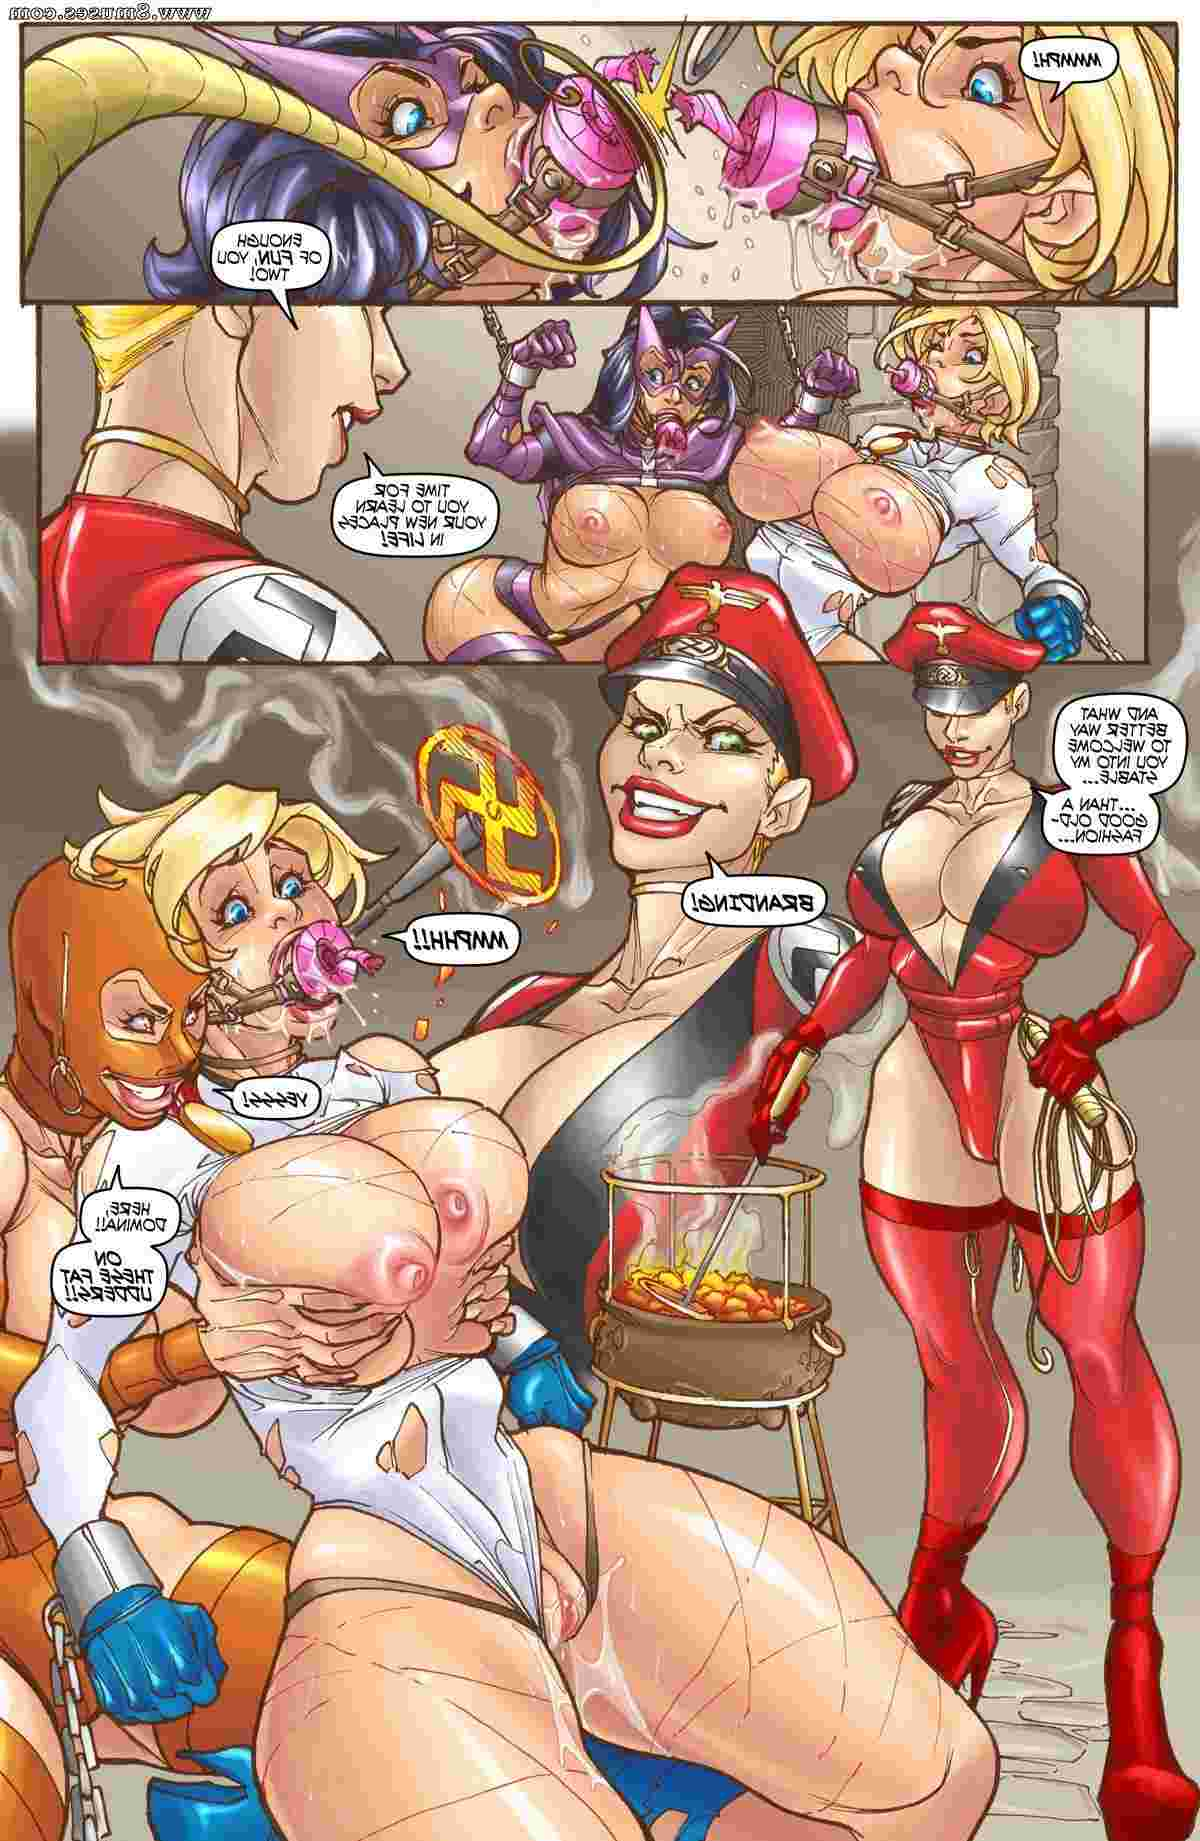 Sluttish-Comics/Power-and-Thunder-Another-Worlds Power_and_Thunder_-_Another_Worlds__8muses_-_Sex_and_Porn_Comics_3.jpg